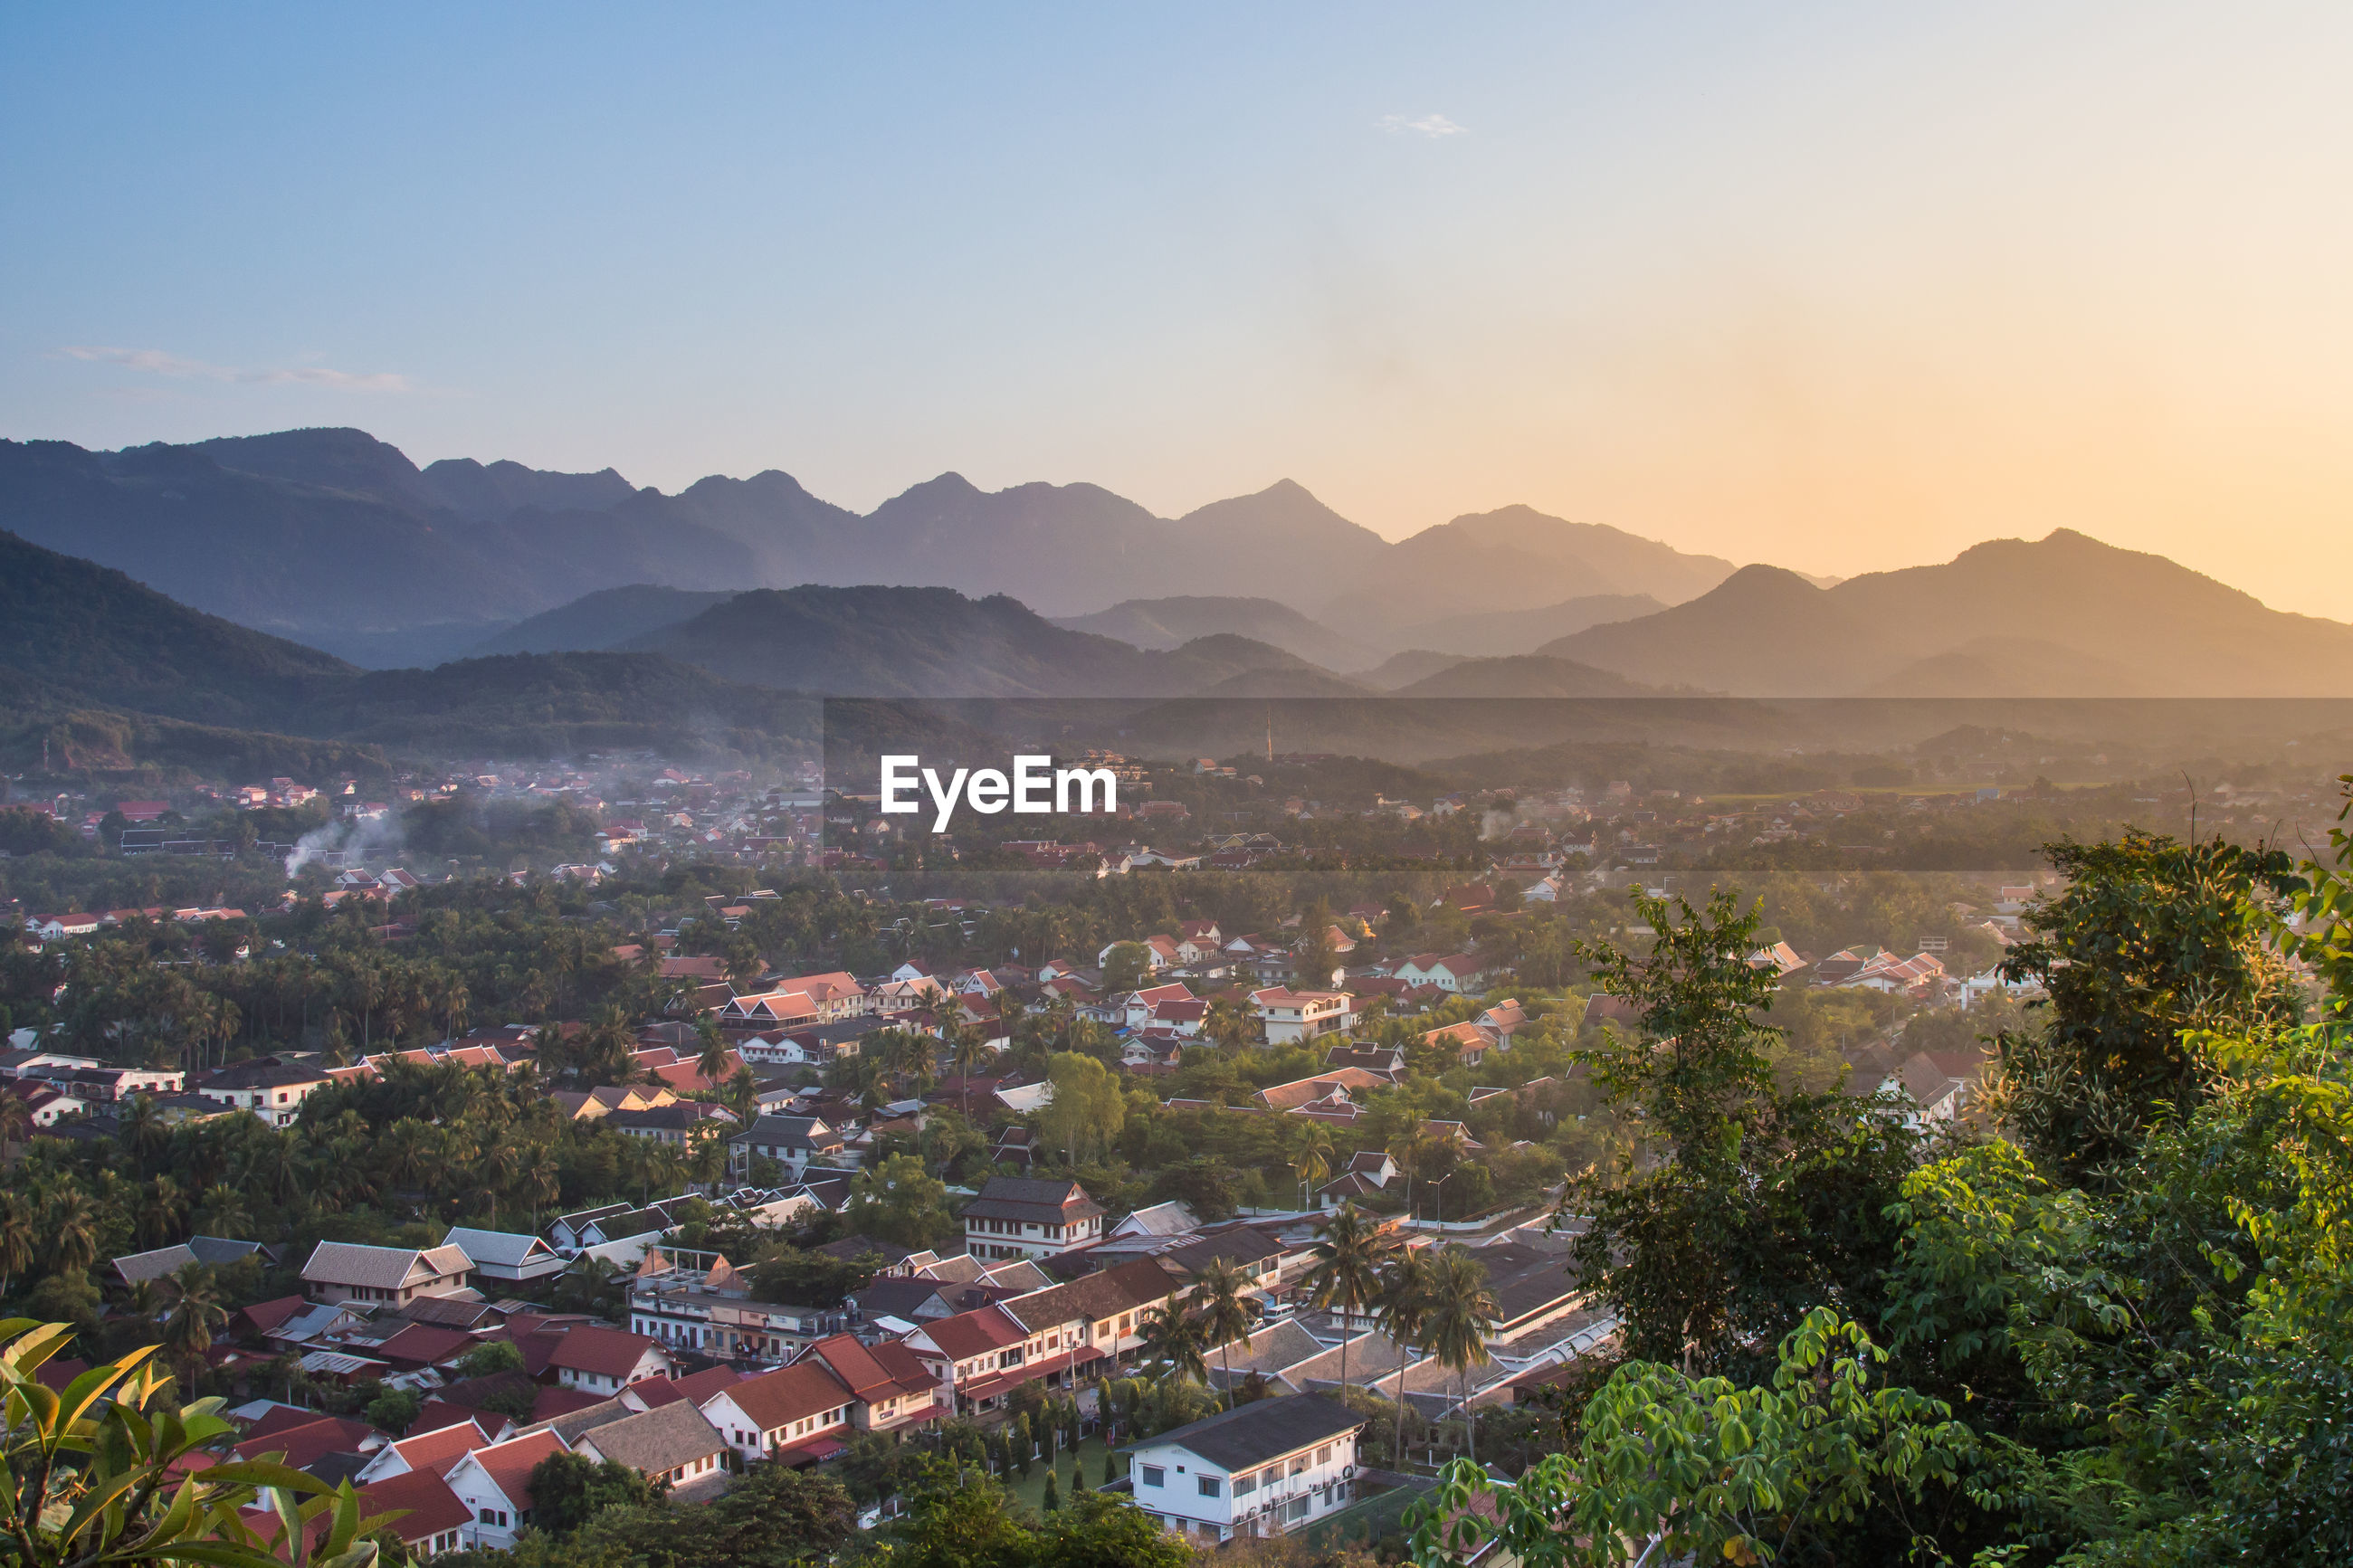 Viewpoint and landscape at luang prabang , laos.